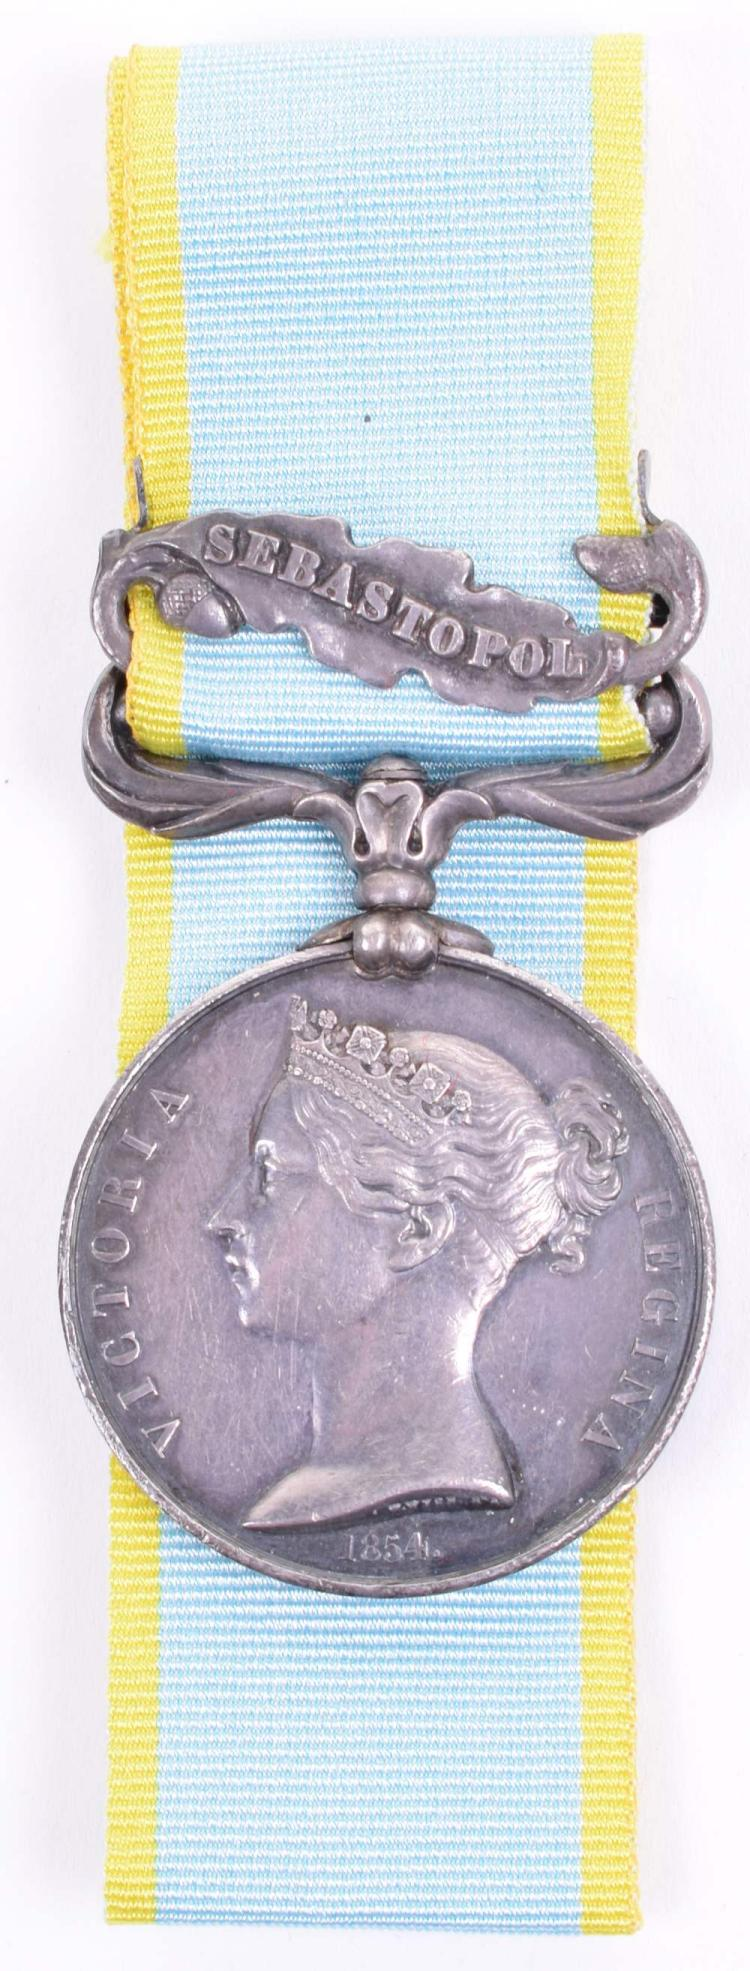 Crimea 1854 Campaign Medal 72nd (Duke of Albany's Own Highlanders) Regiment of Foot